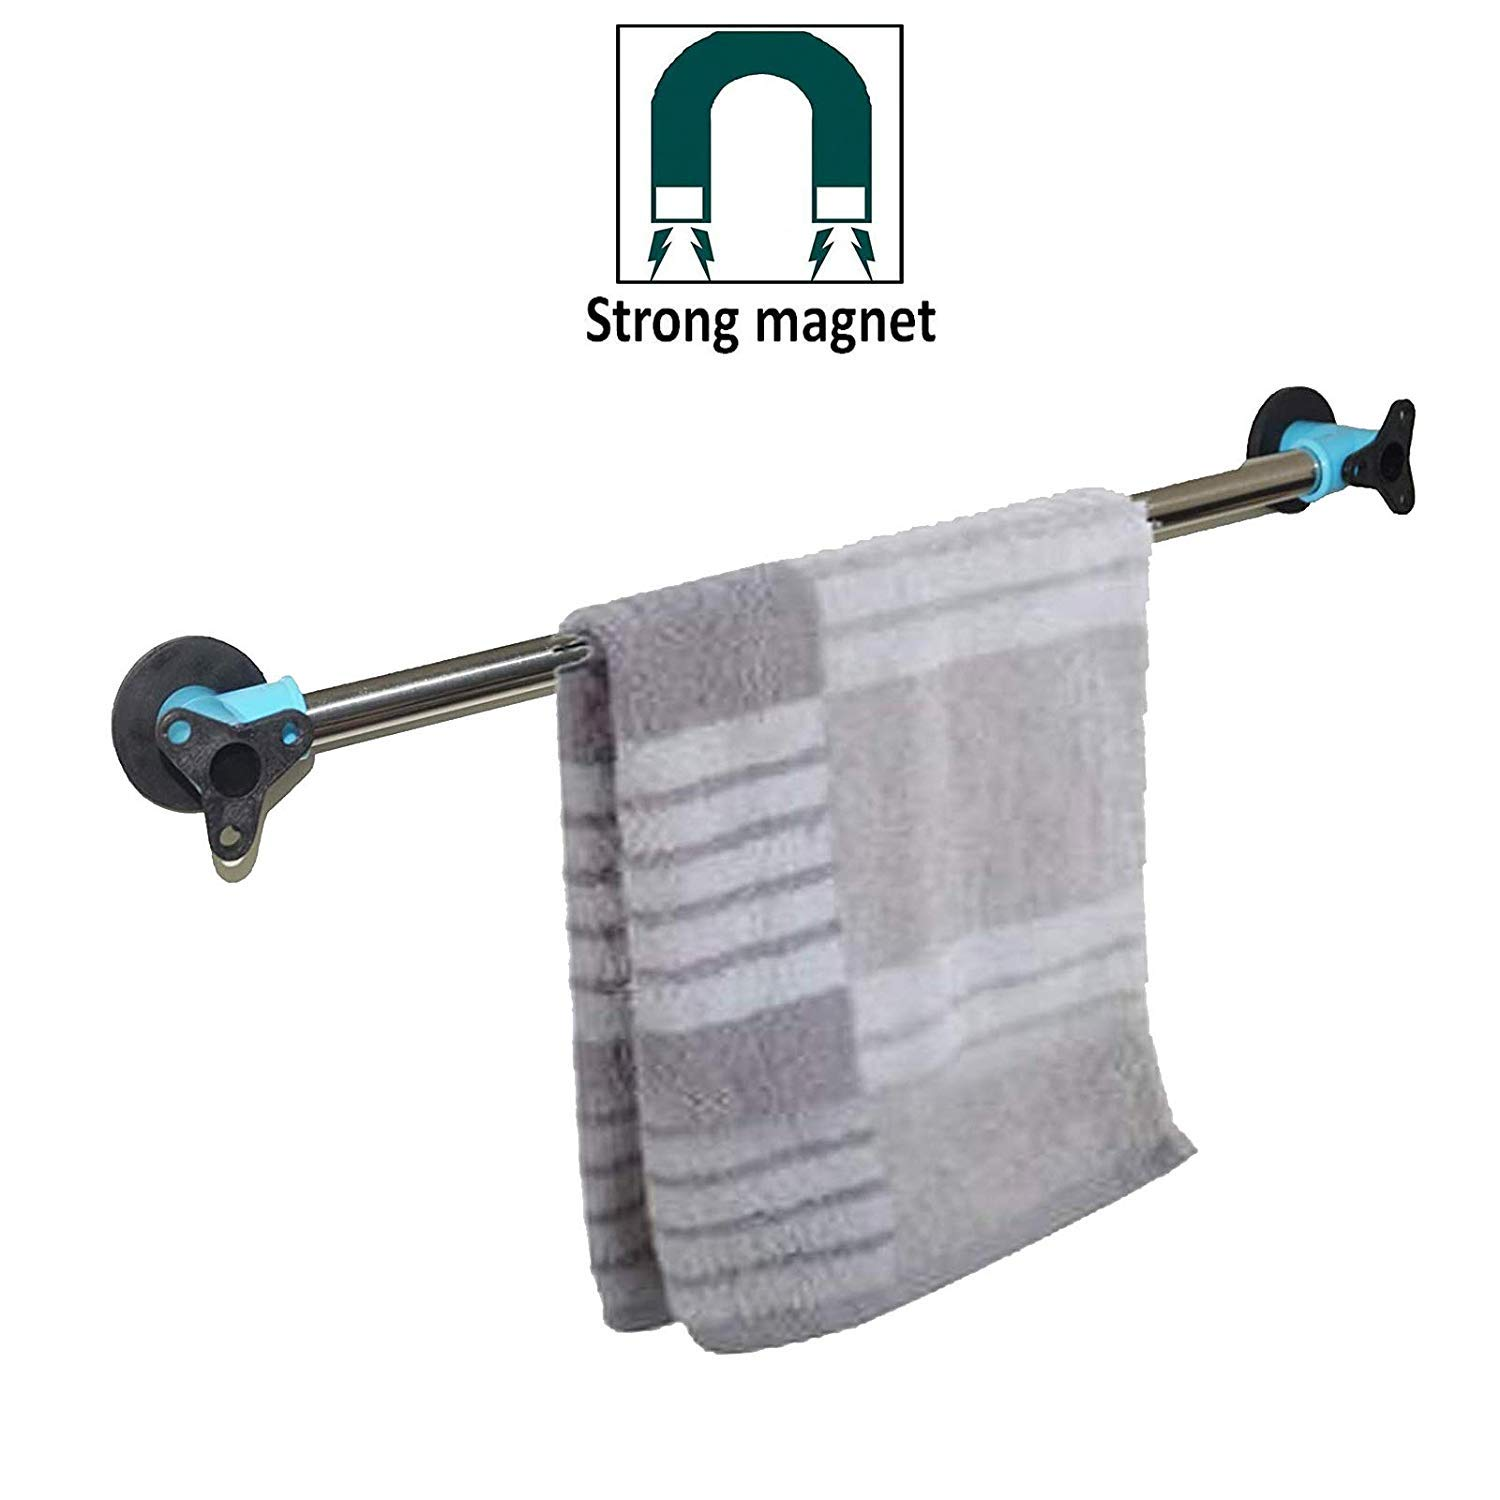 Strong Magnetic Towel Bar, Powerful Magnet Towel Holder, Towel Hook Hanger — Removeable Towel Rack — Great for Refrigerator, Kitchen Sink and Other Magnetic Surfaces — No drilling required,No screws